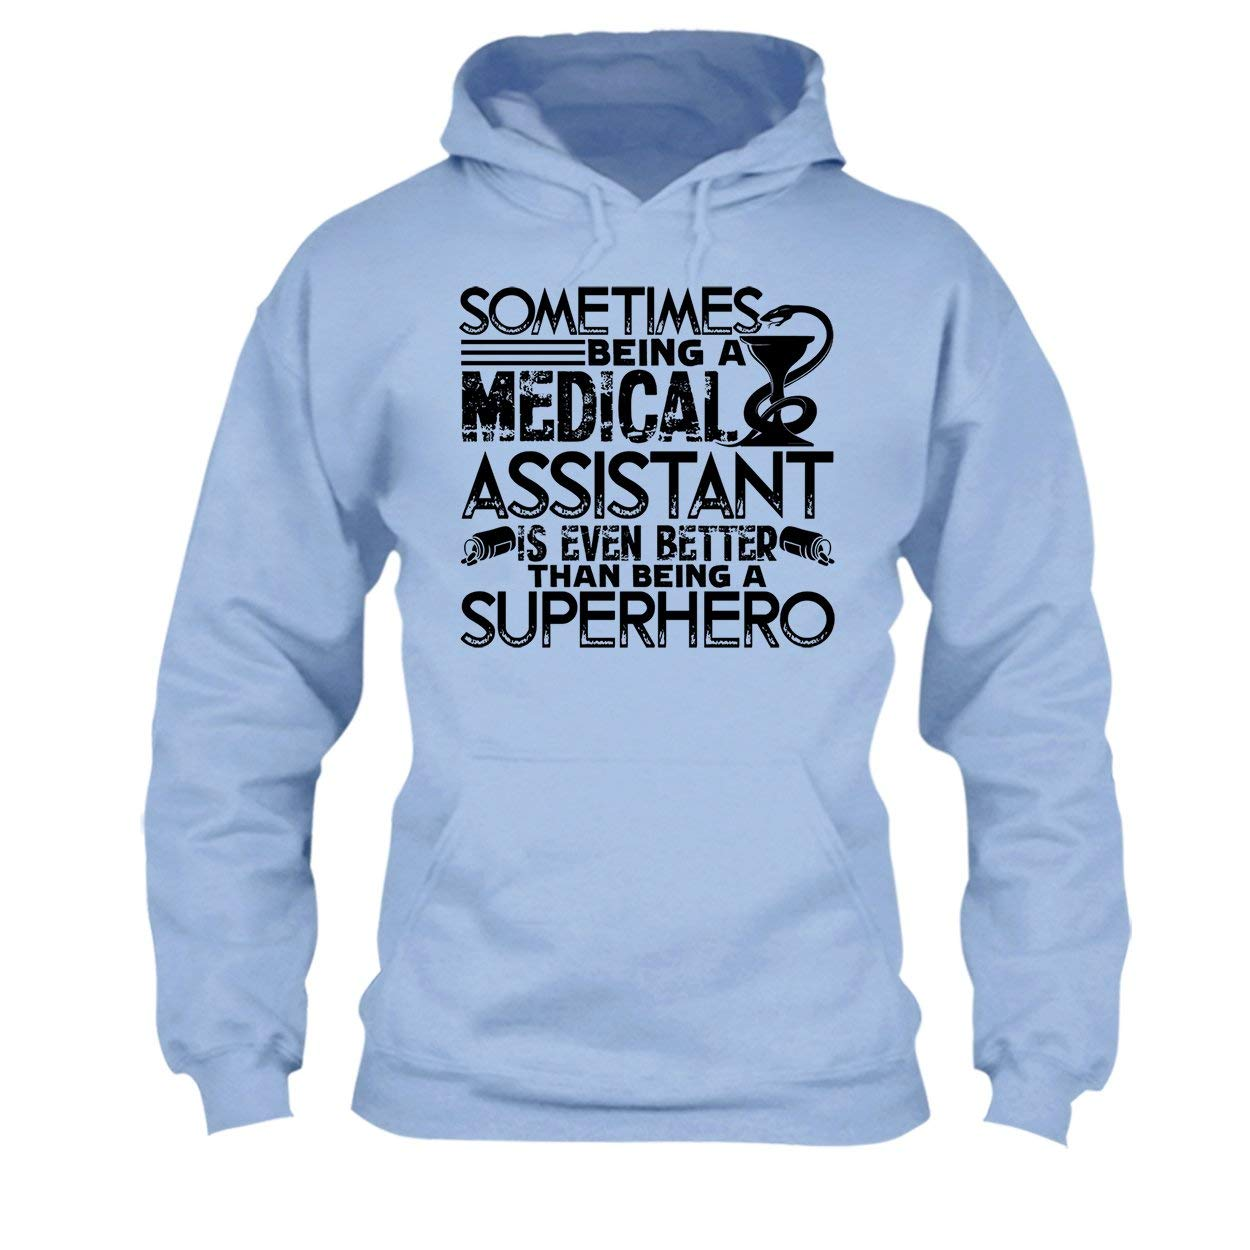 Tee Shirt Sweatshirts Being A Medical Assistant T Shirt